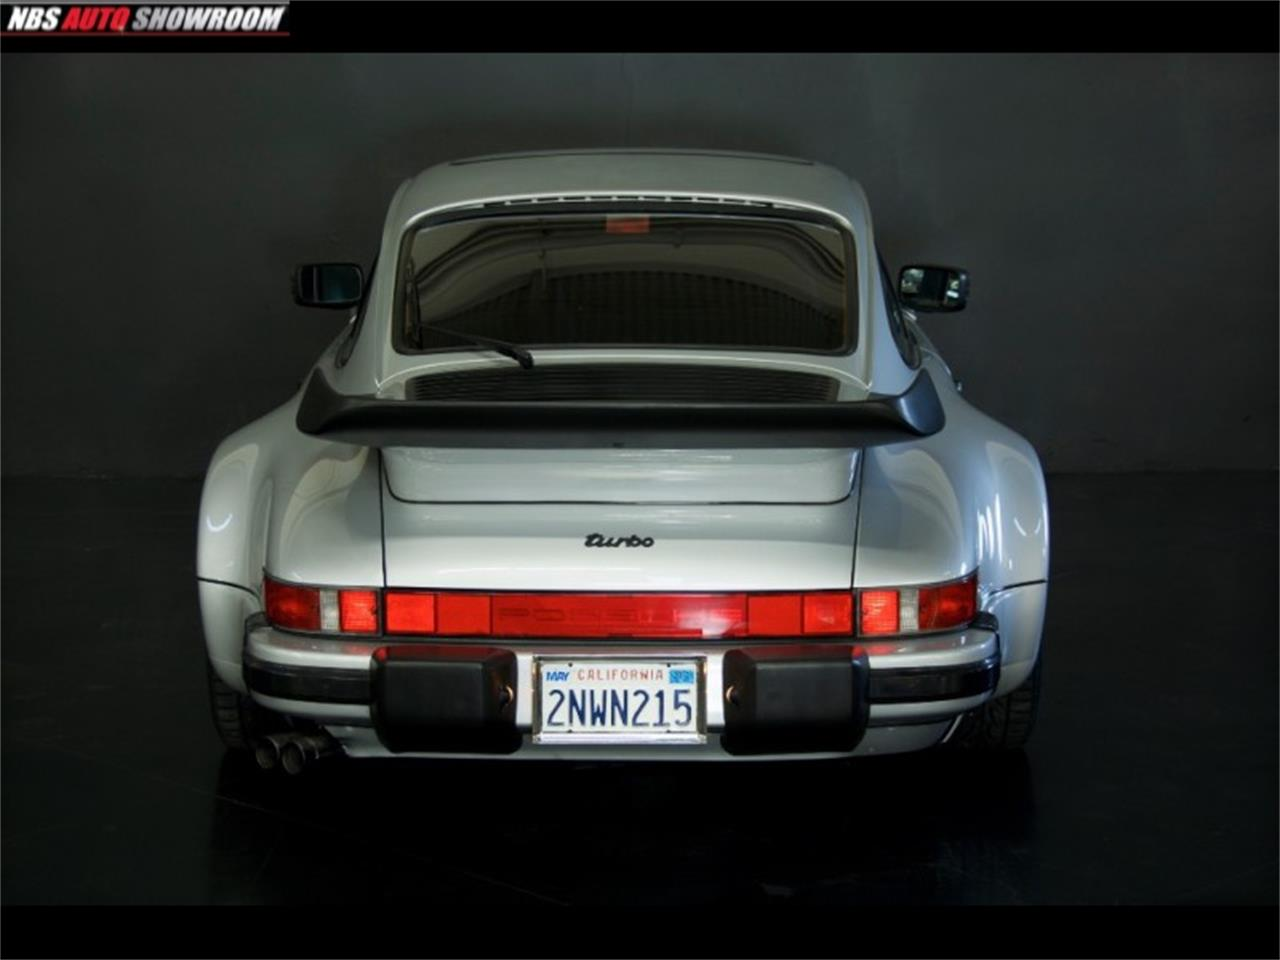 Large Picture of 1989 911 located in Milpitas California Offered by NBS Auto Showroom - Q9VO